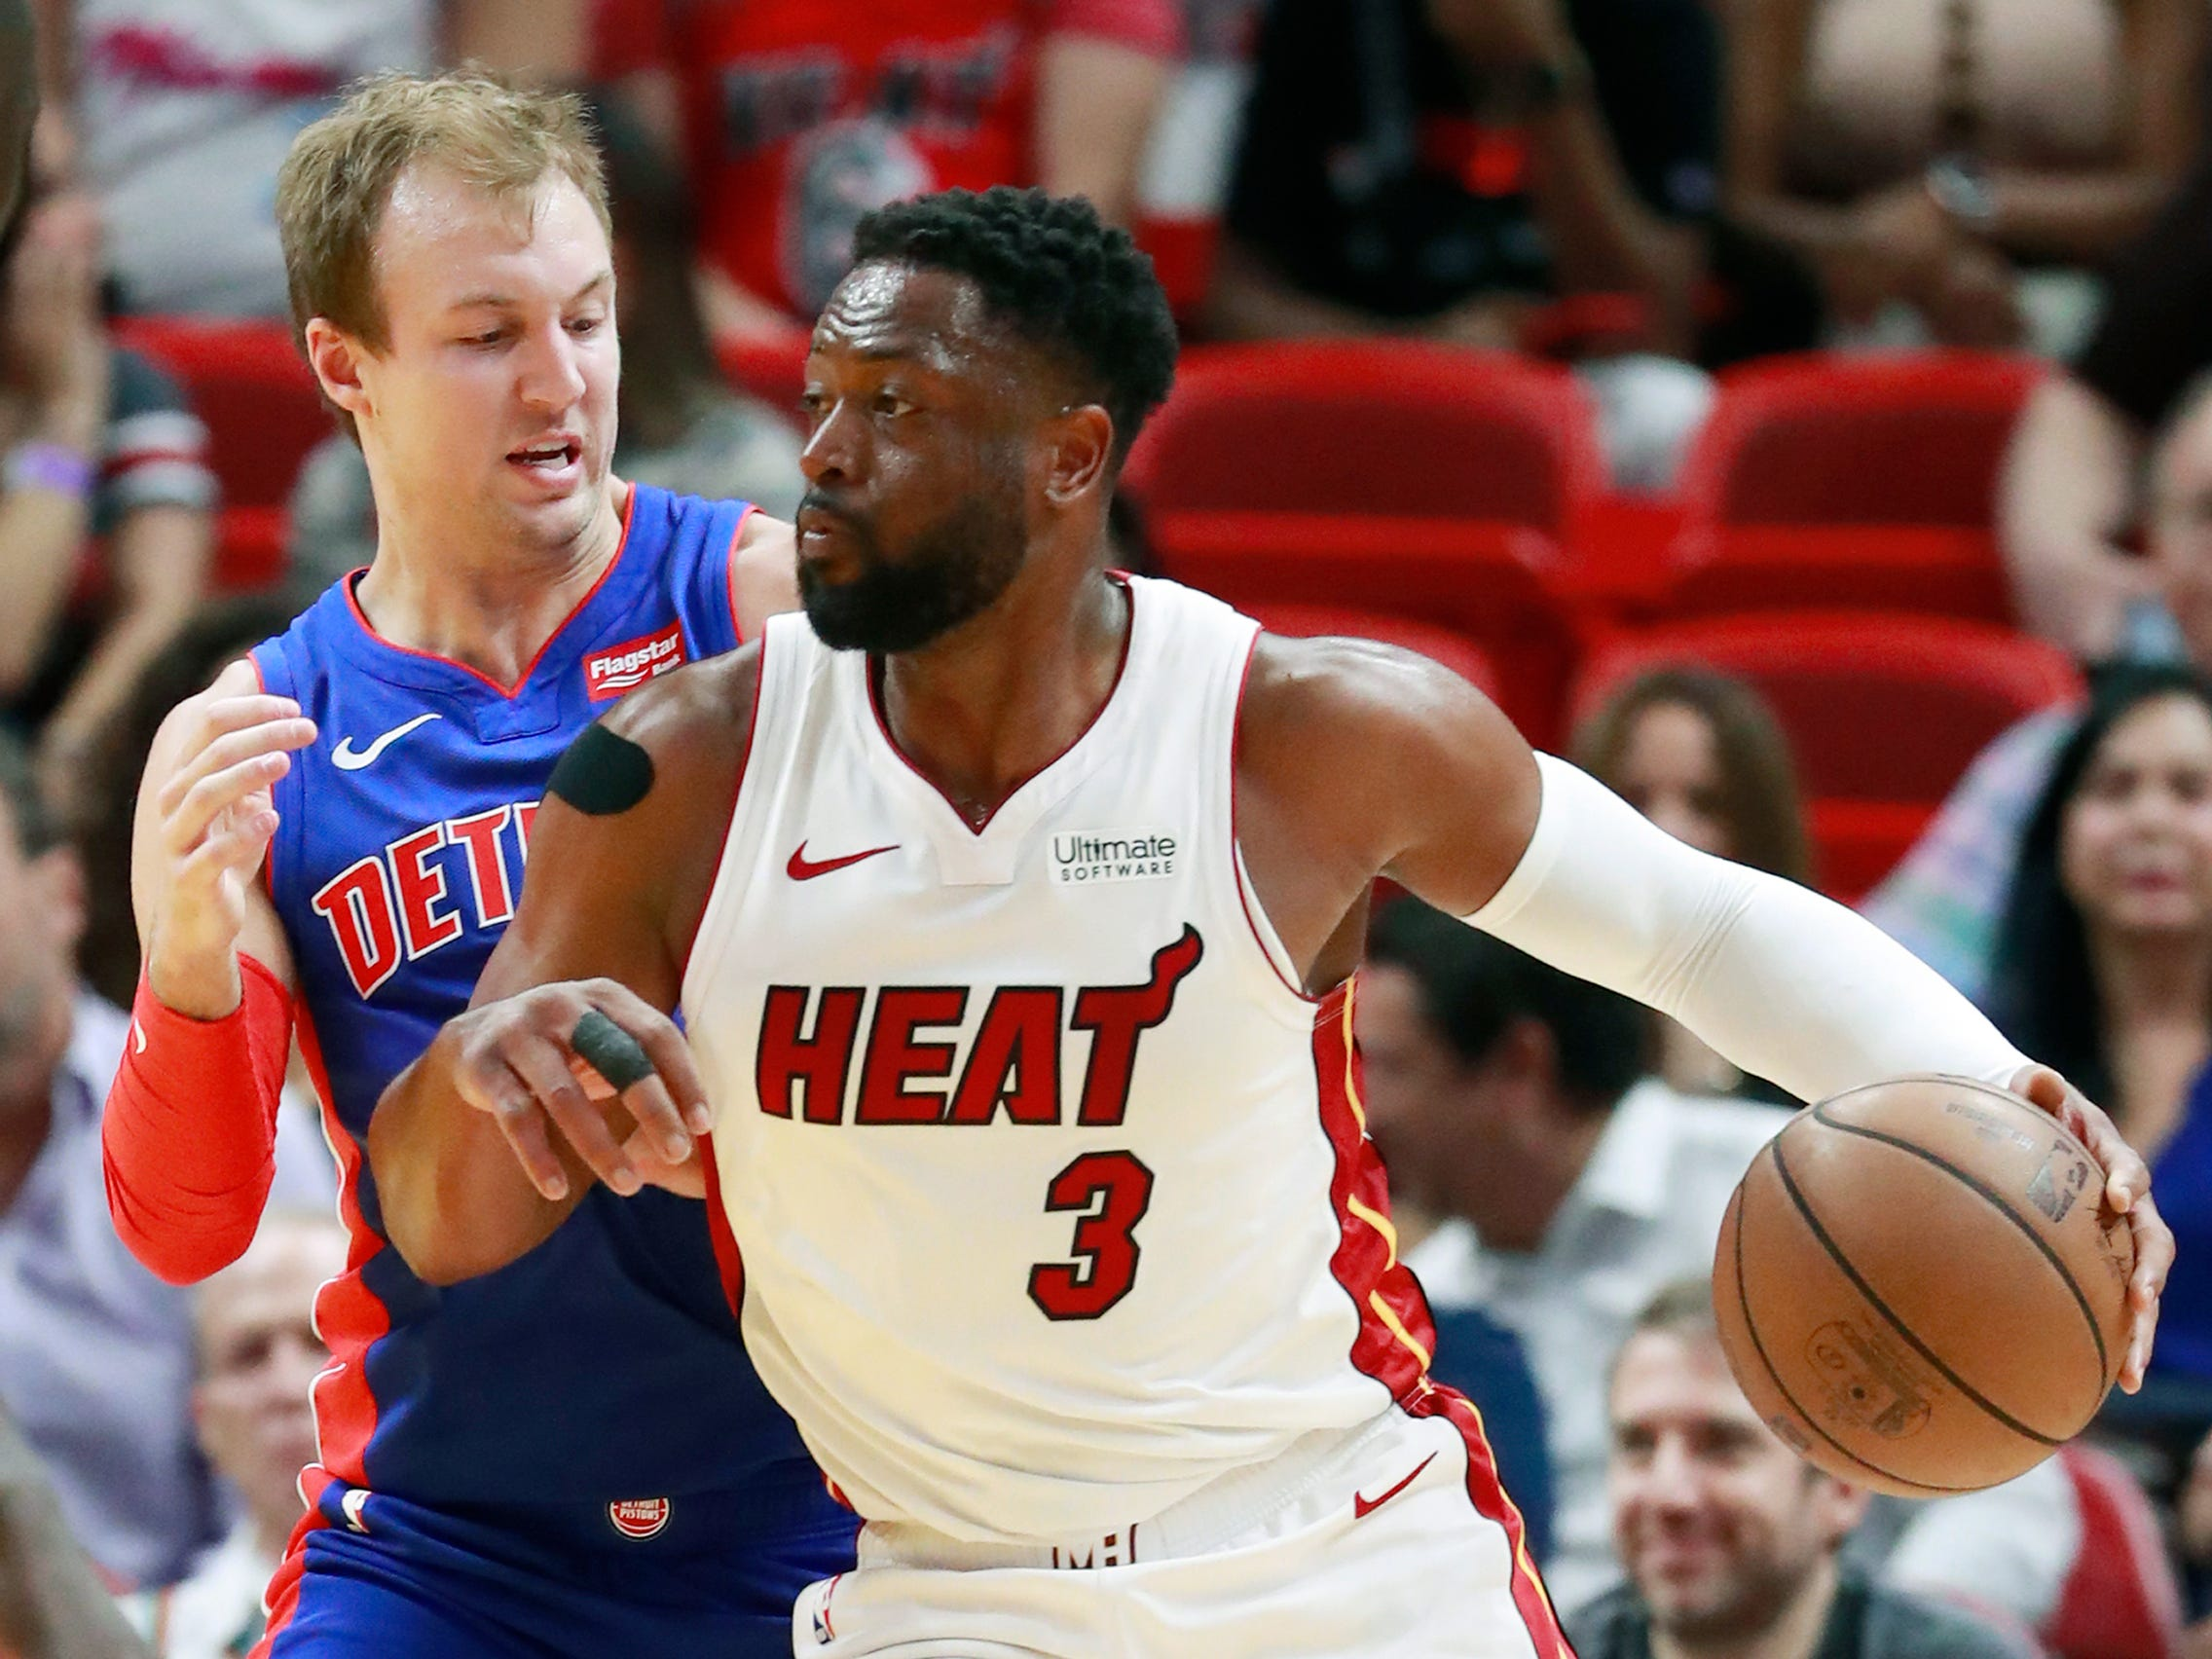 Miami Heat guard Dwyane Wade (3) drives against Detroit Pistons guard Luke Kennard during the first half of an NBA basketball game, Wednesday, March 13, 2019, in Miami.